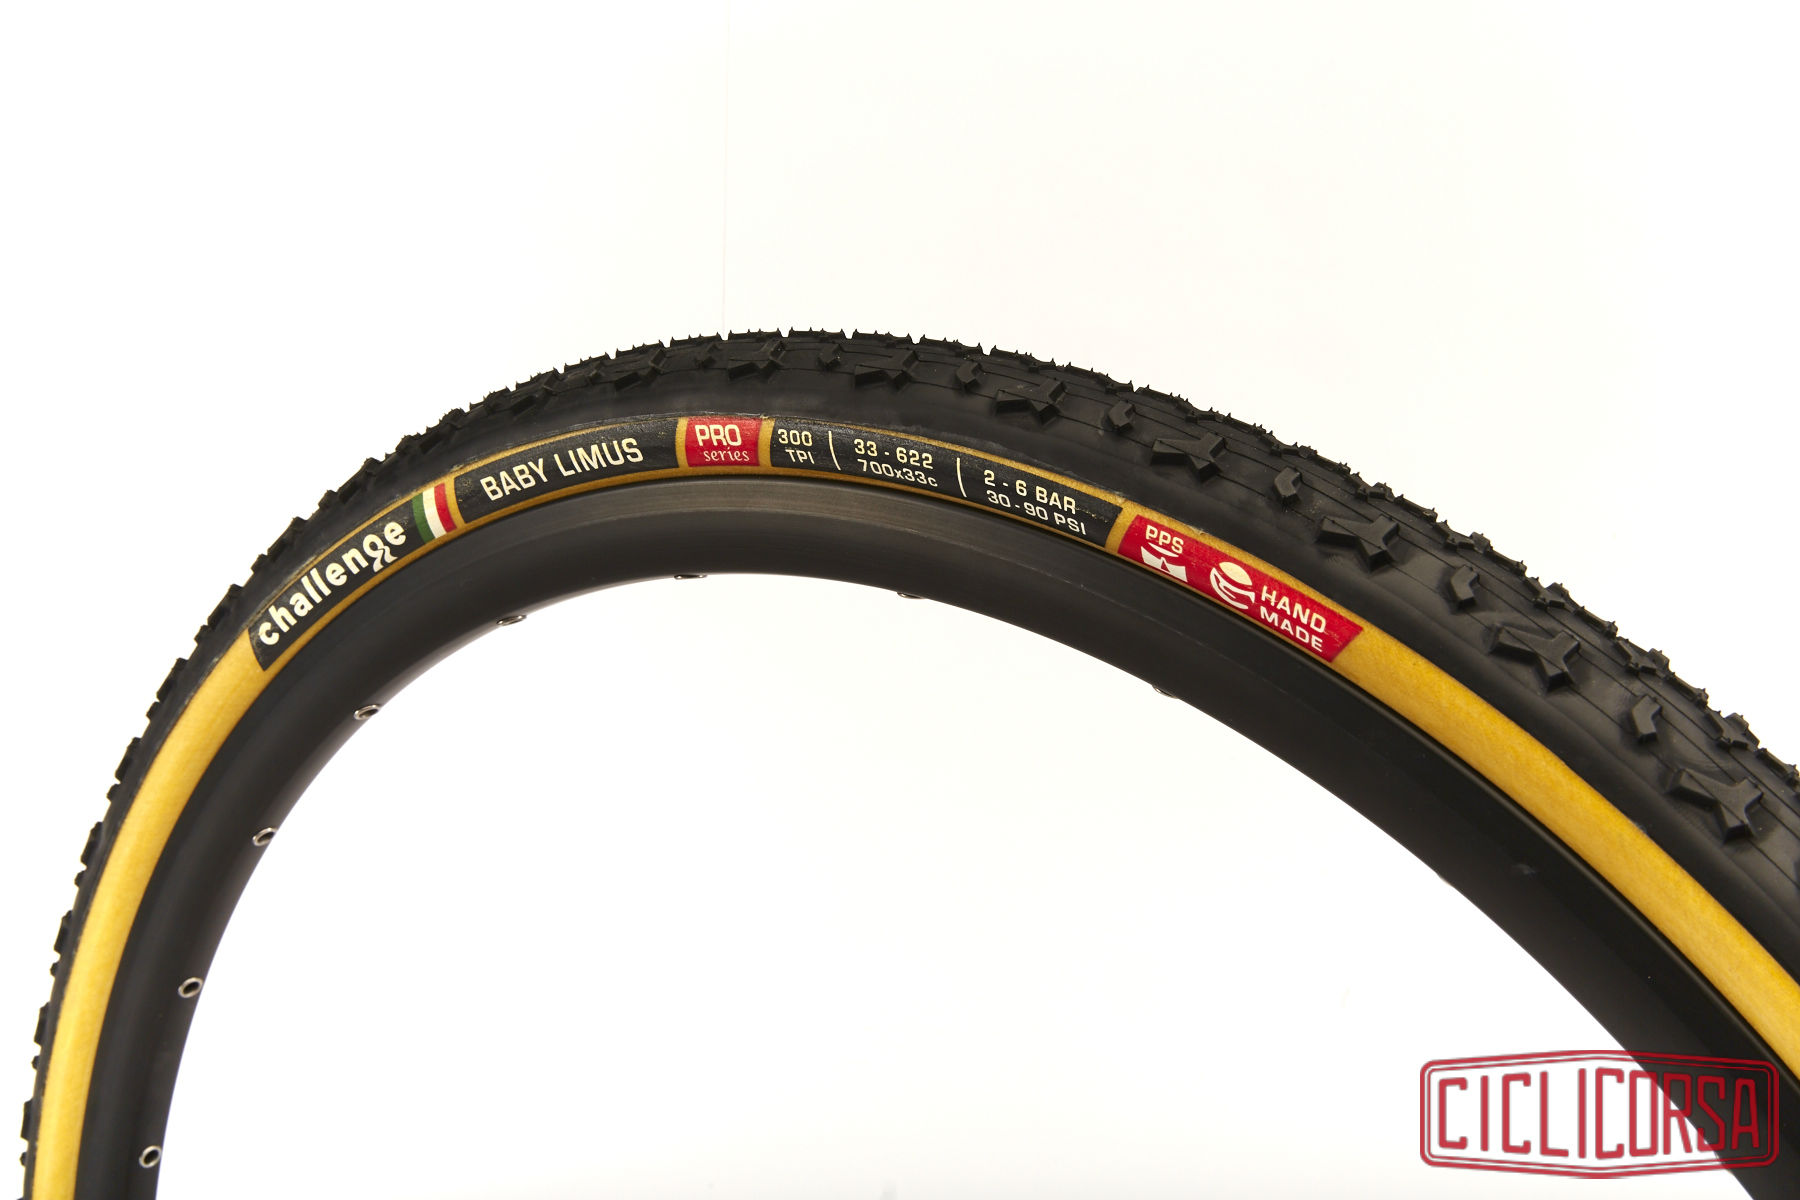 Challenge Tires Baby Limus Open Tubular Cyclocross Mud